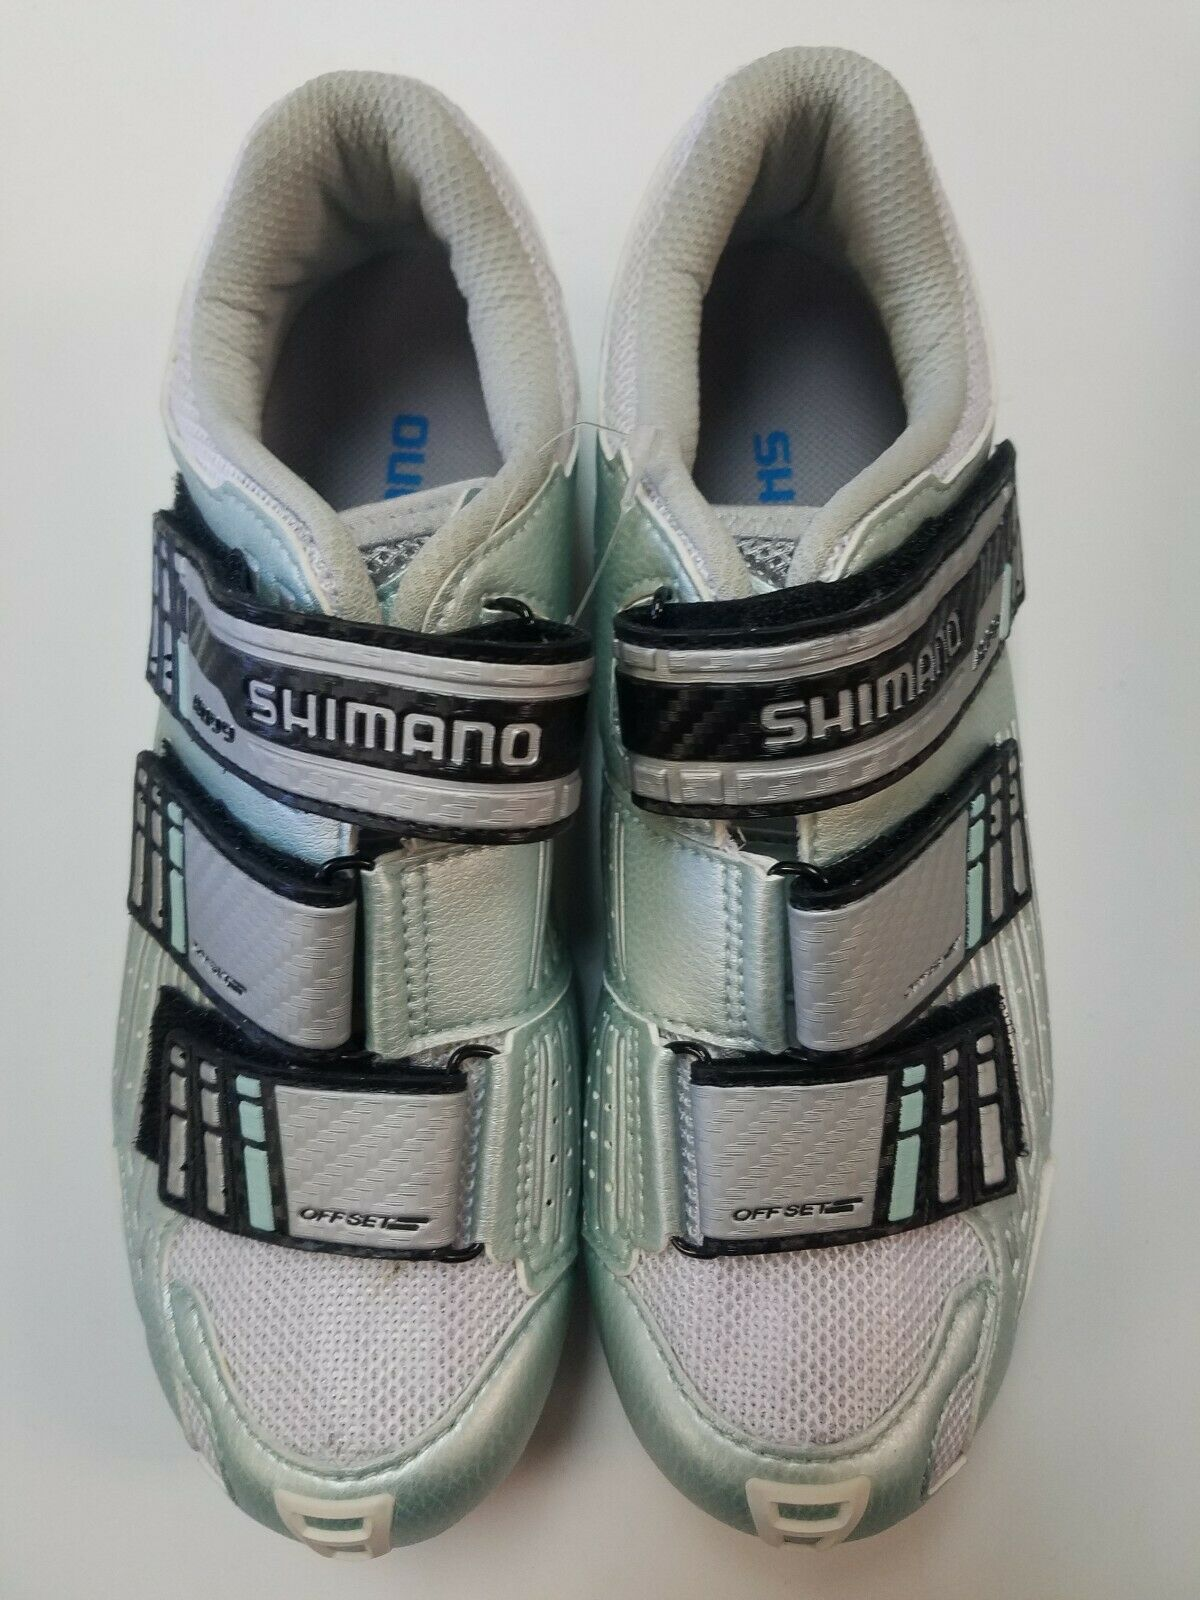 NEW in Box Shimano SH-R099W SPDSL SPDSL SPDSL donna Cycling scarpe EU 38 US 6.5 Road scarpe e41af5